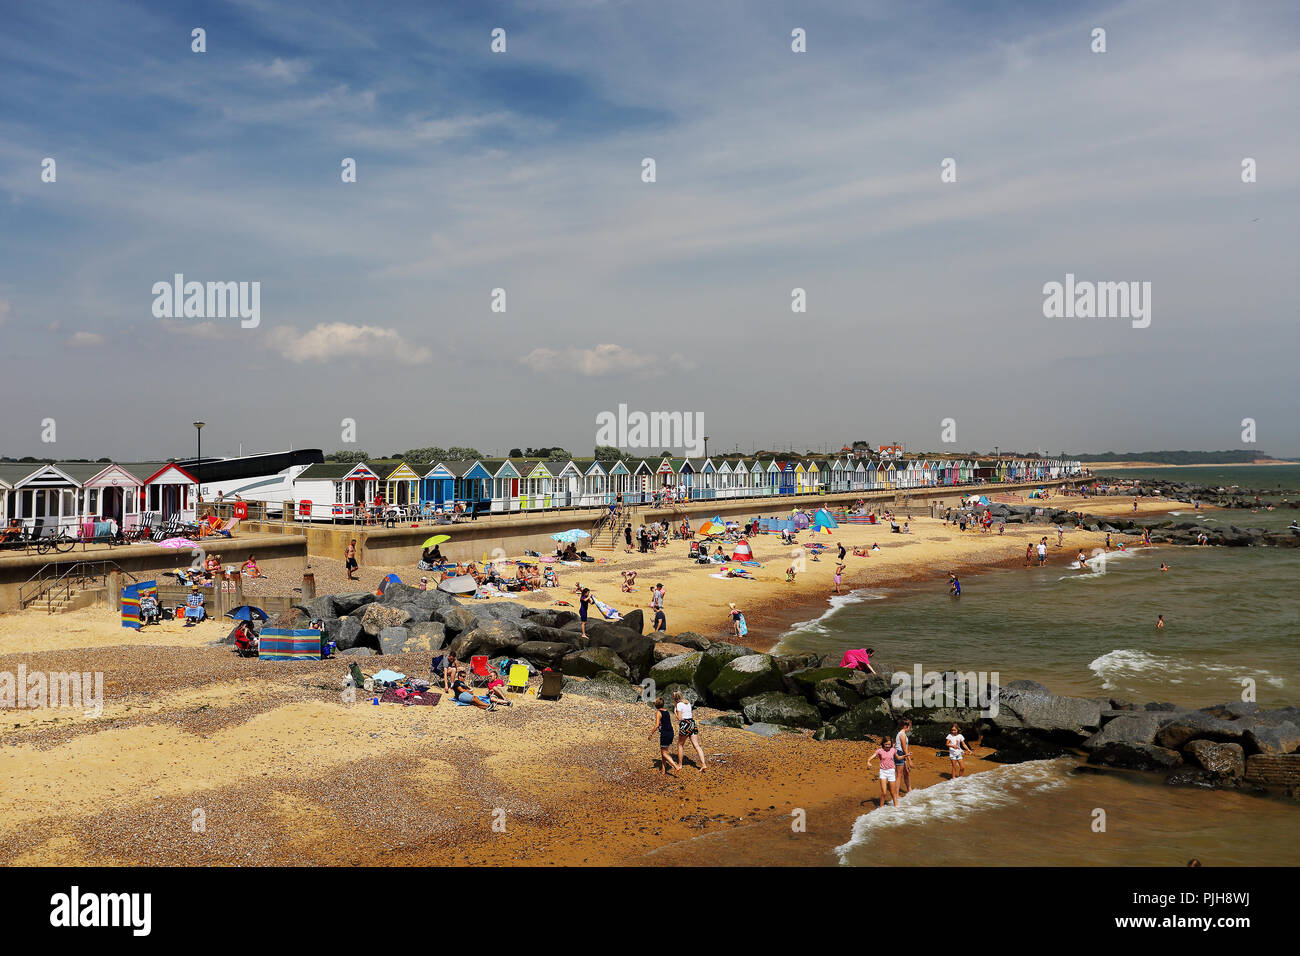 The beach at Southwold, Suffolk, UK seen from the pier. - Stock Image